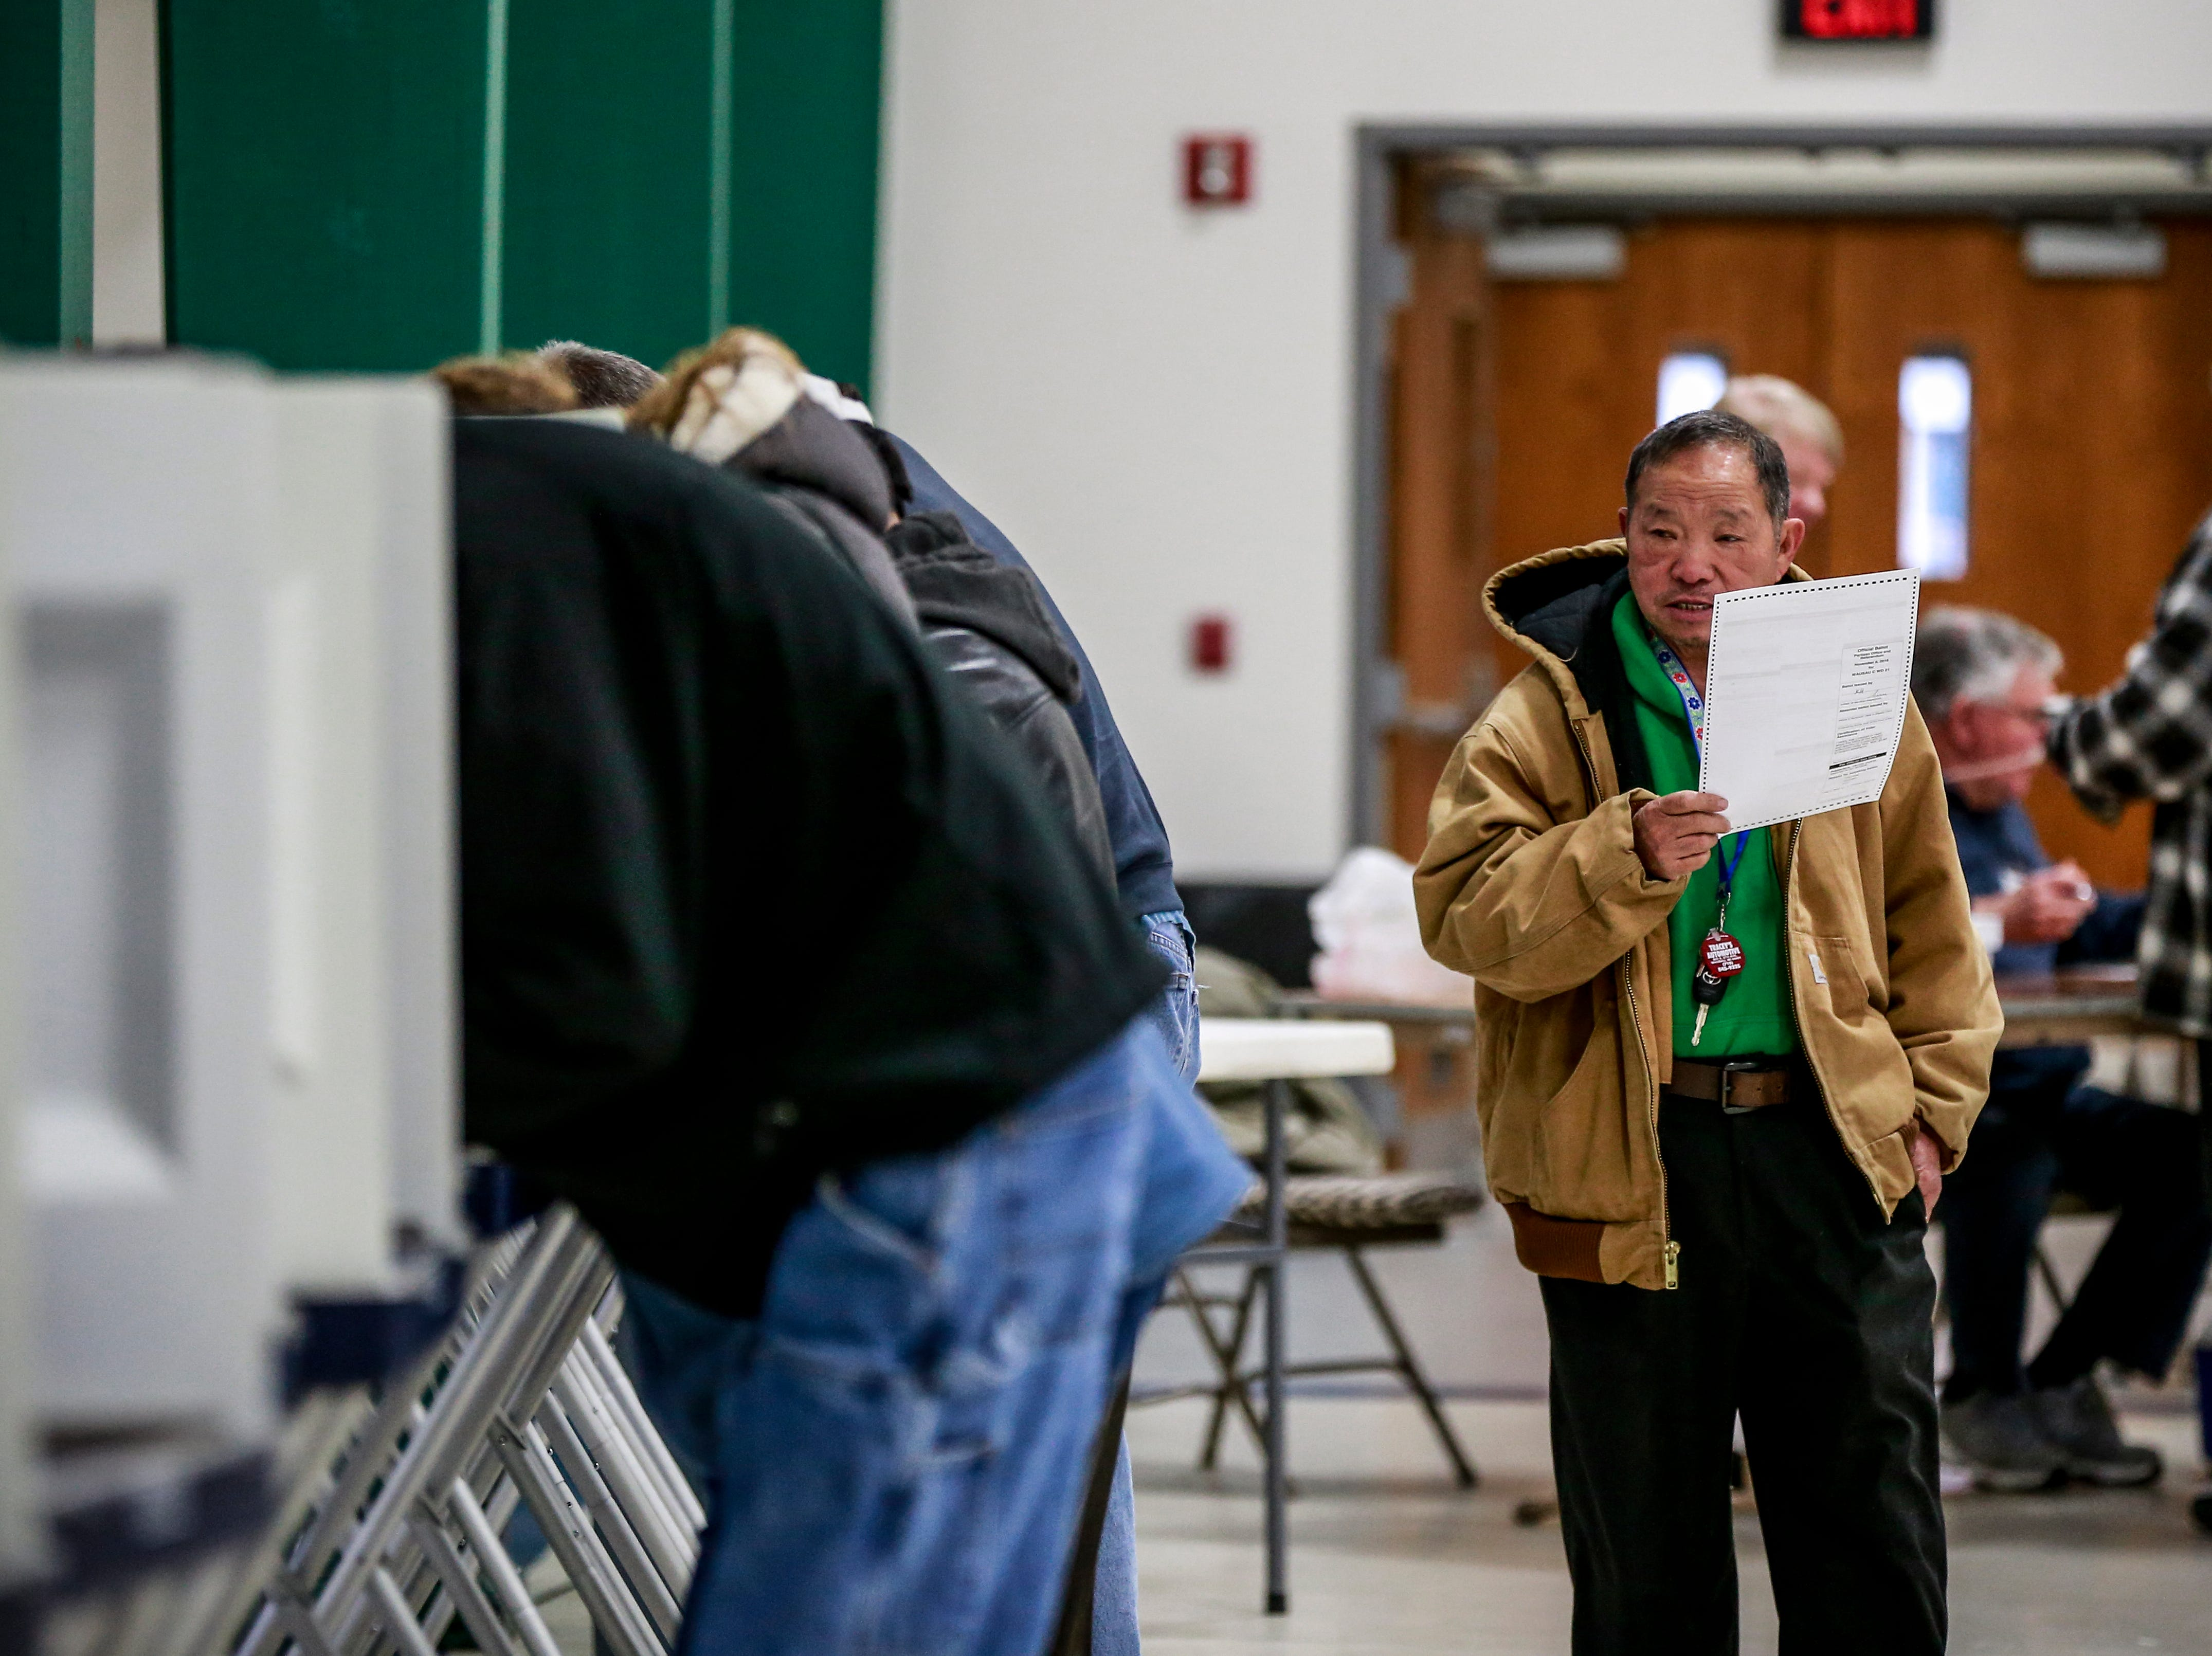 Voter Naolue Yang, right, of Wausau, approaches the ballots feeding Tuesday, Nov. 6, 2018, at the Youth Building in Marathon Park in Wausau, Wis. T'xer Zhon Kha/USA TODAY NETWORK-Wisconsin